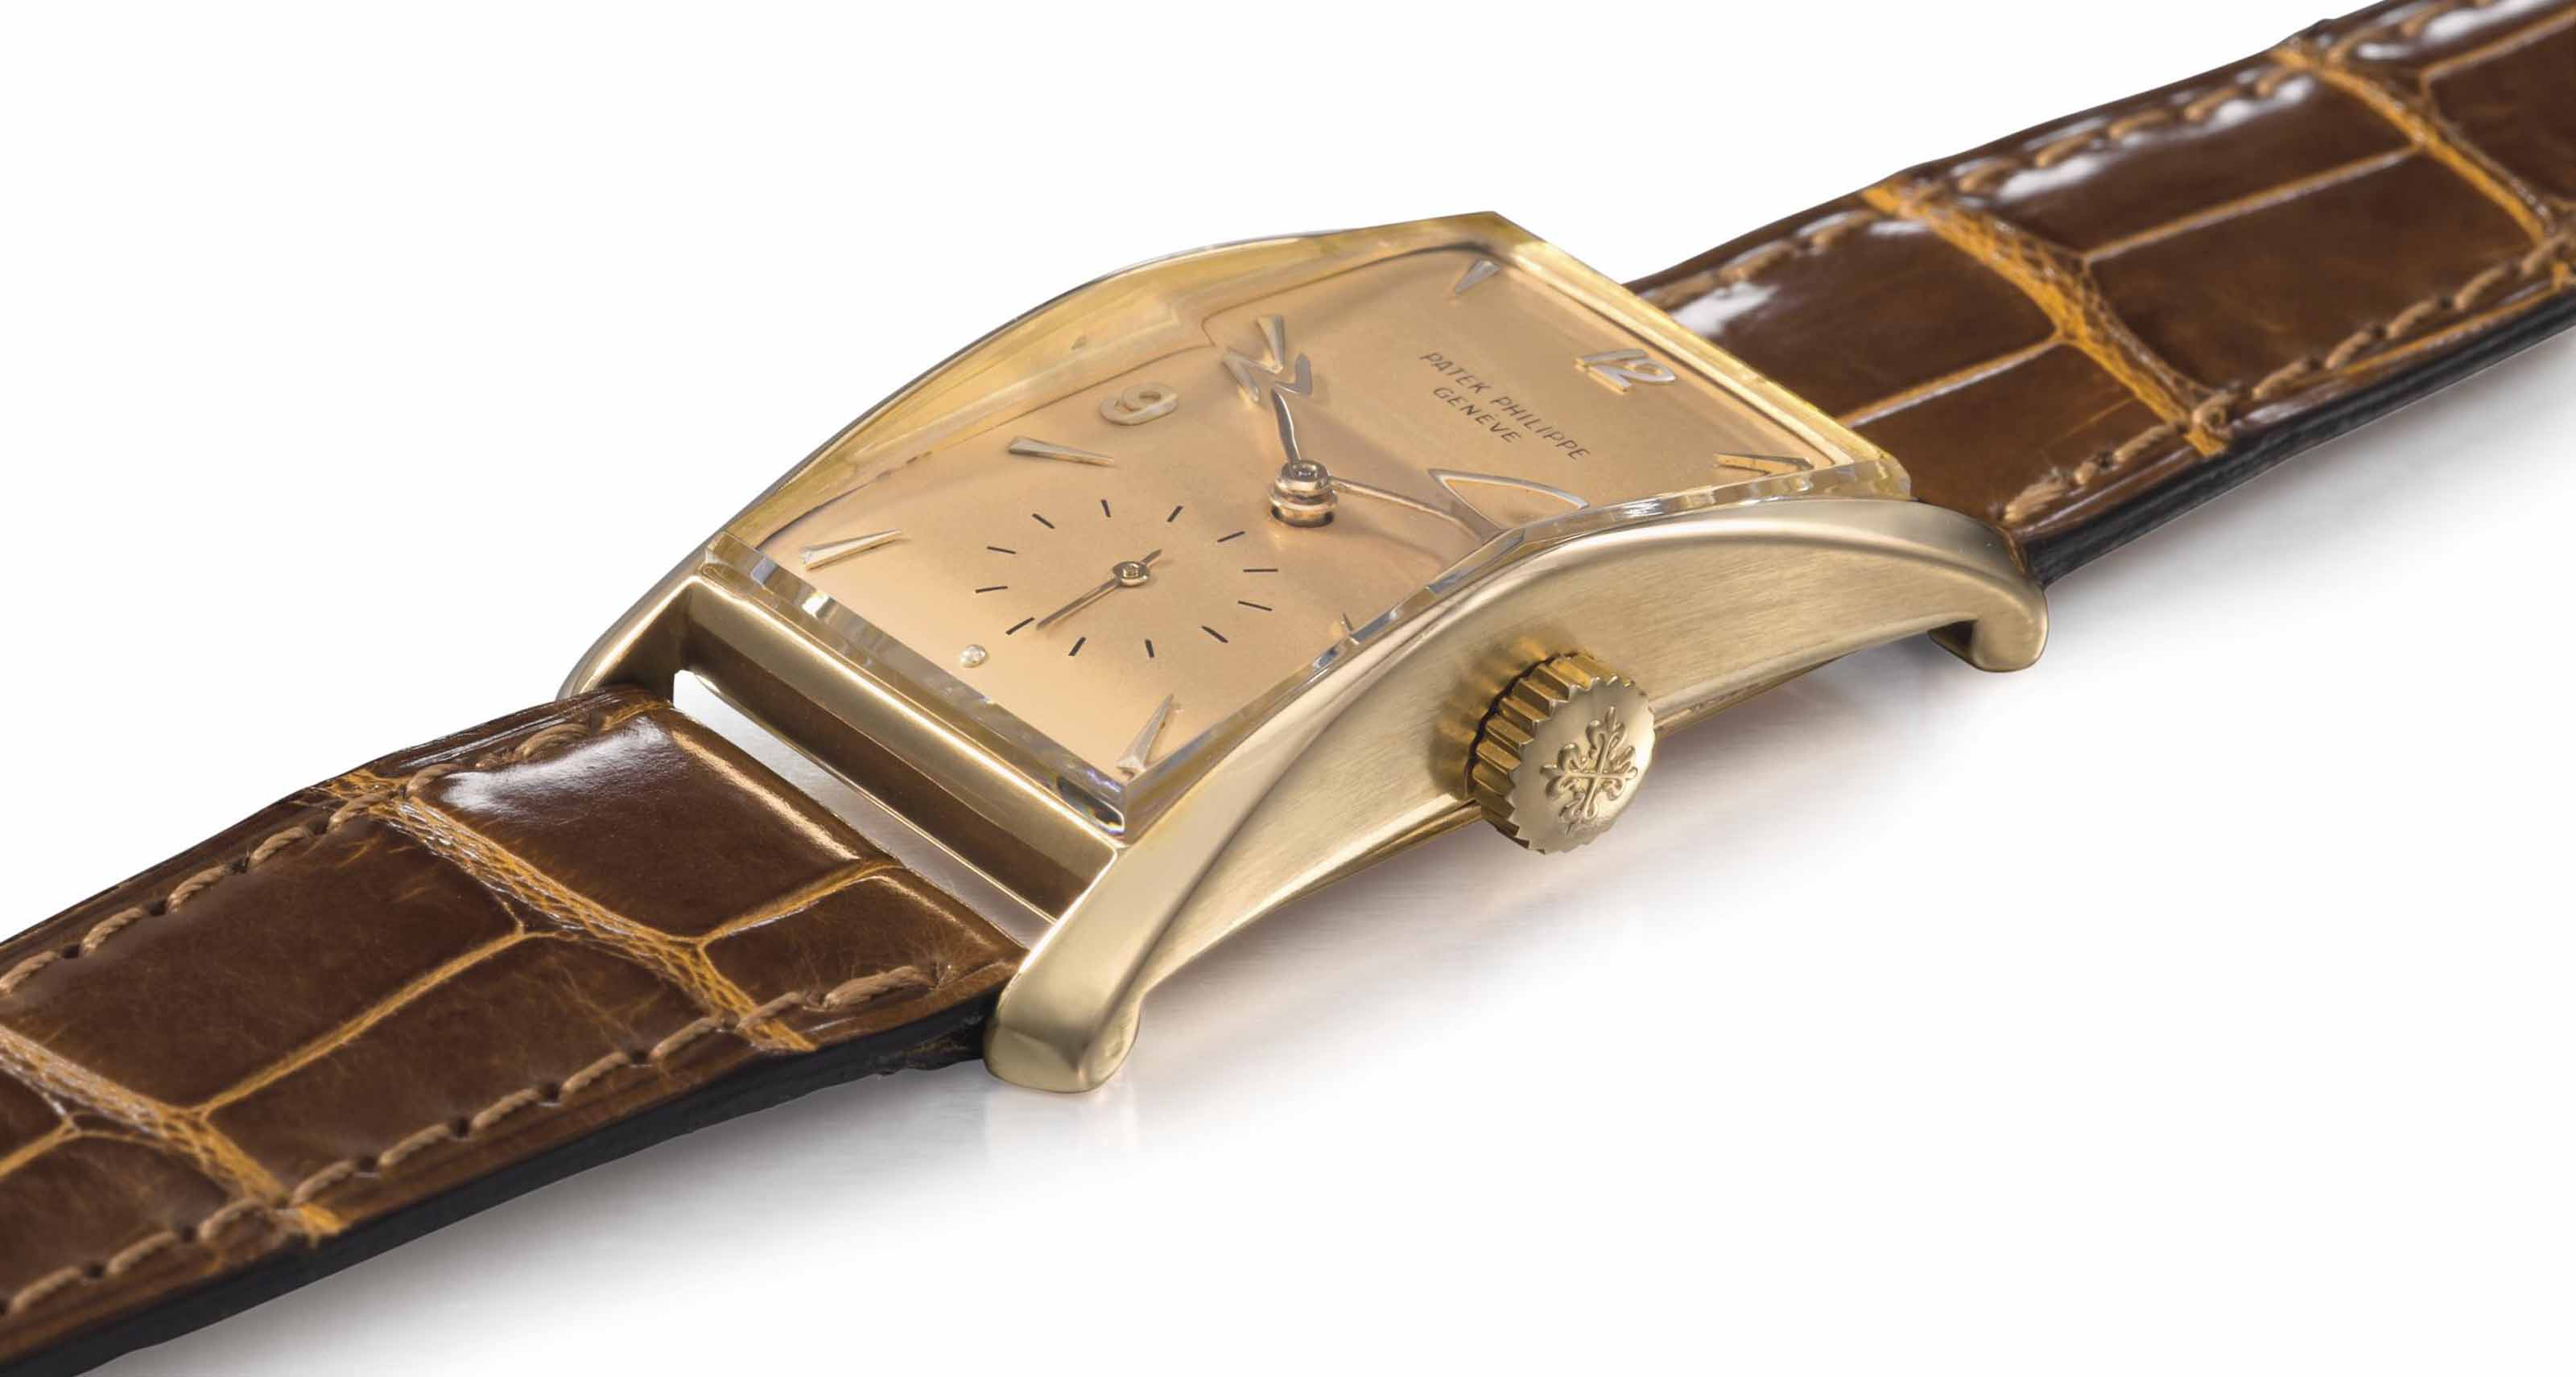 PATEK PHILIPPE. A FINE AND RARE 18K PINK GOLD RECTANGULAR CURVED WRISTWATCH WITH PINK DIAL